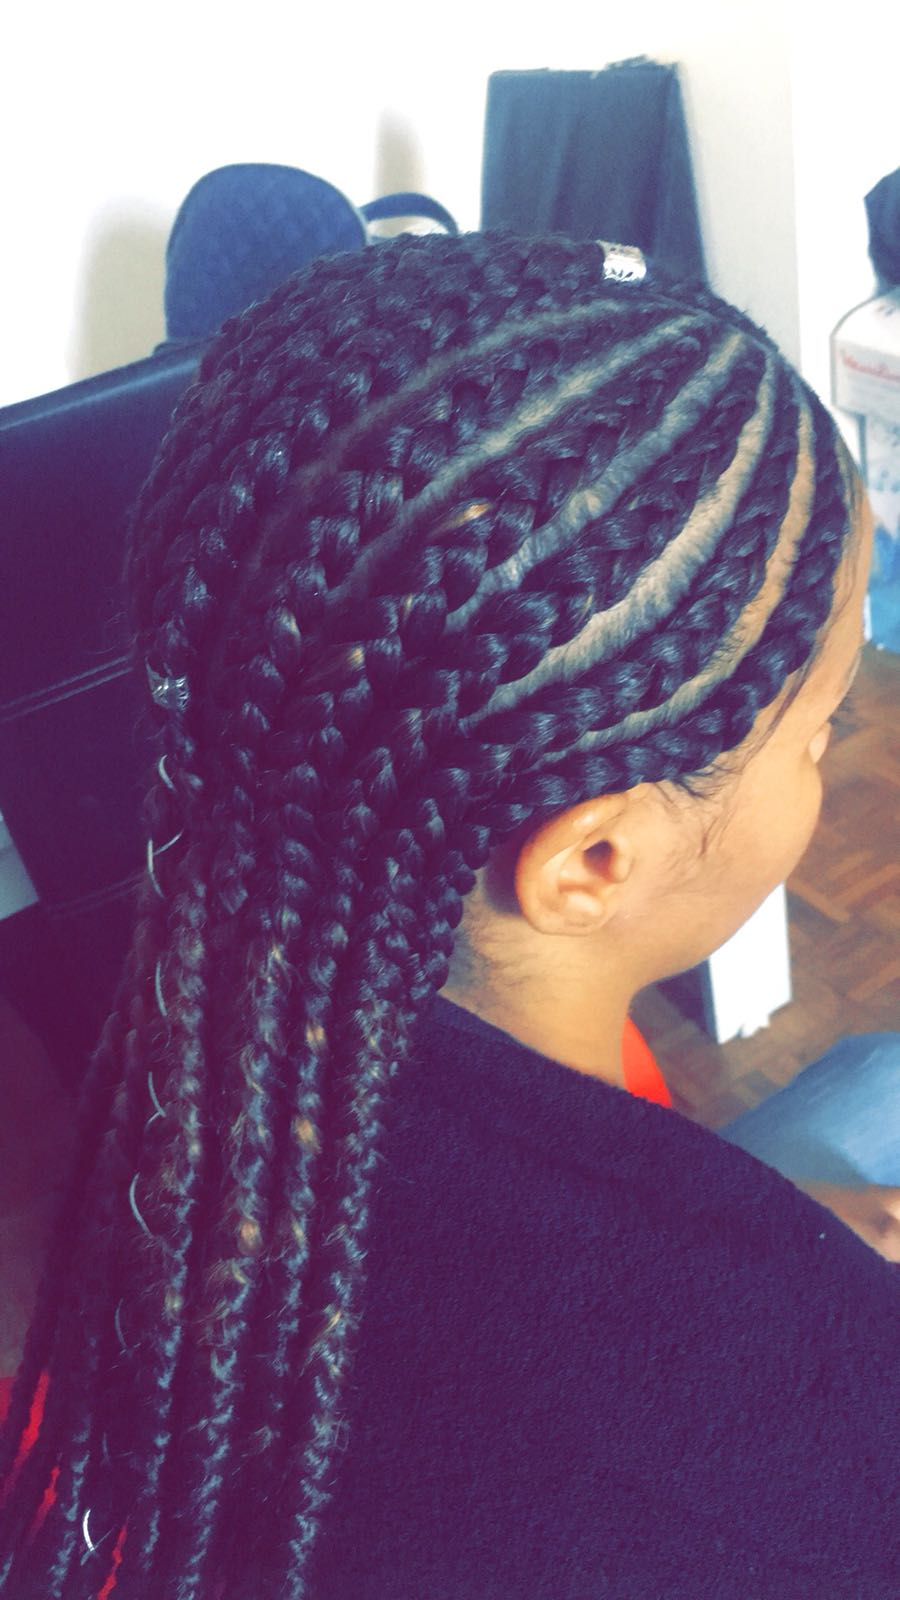 salon de coiffure afro tresse tresses box braids crochet braids vanilles tissages paris 75 77 78 91 92 93 94 95 VCTXPBBO